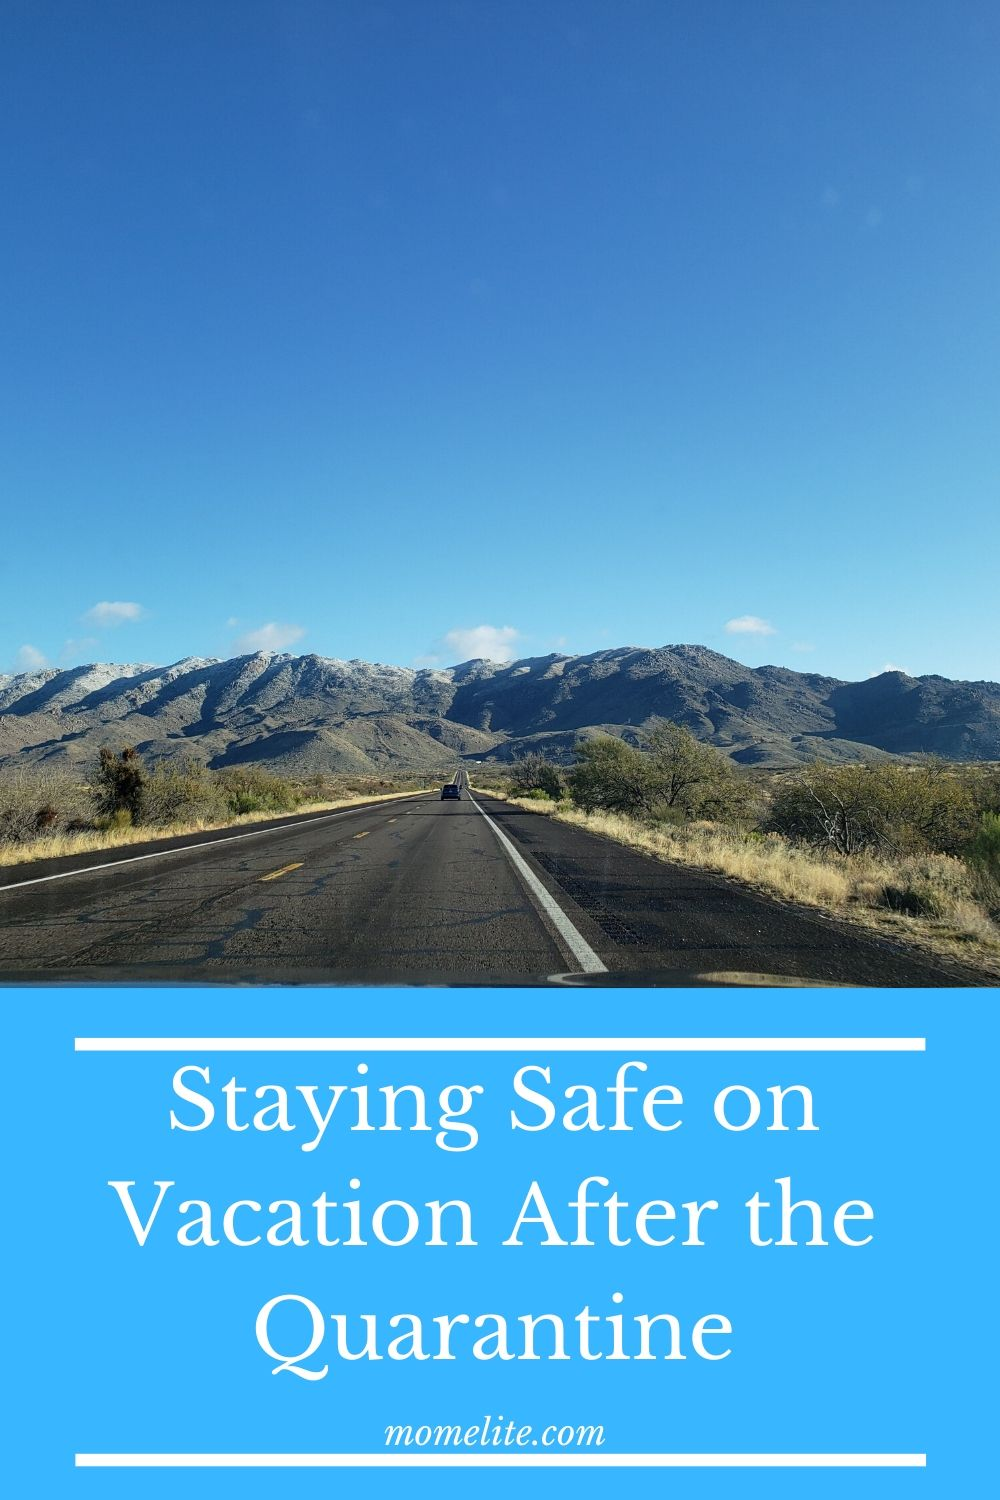 Staying Safe on Vacation After the Quarantine